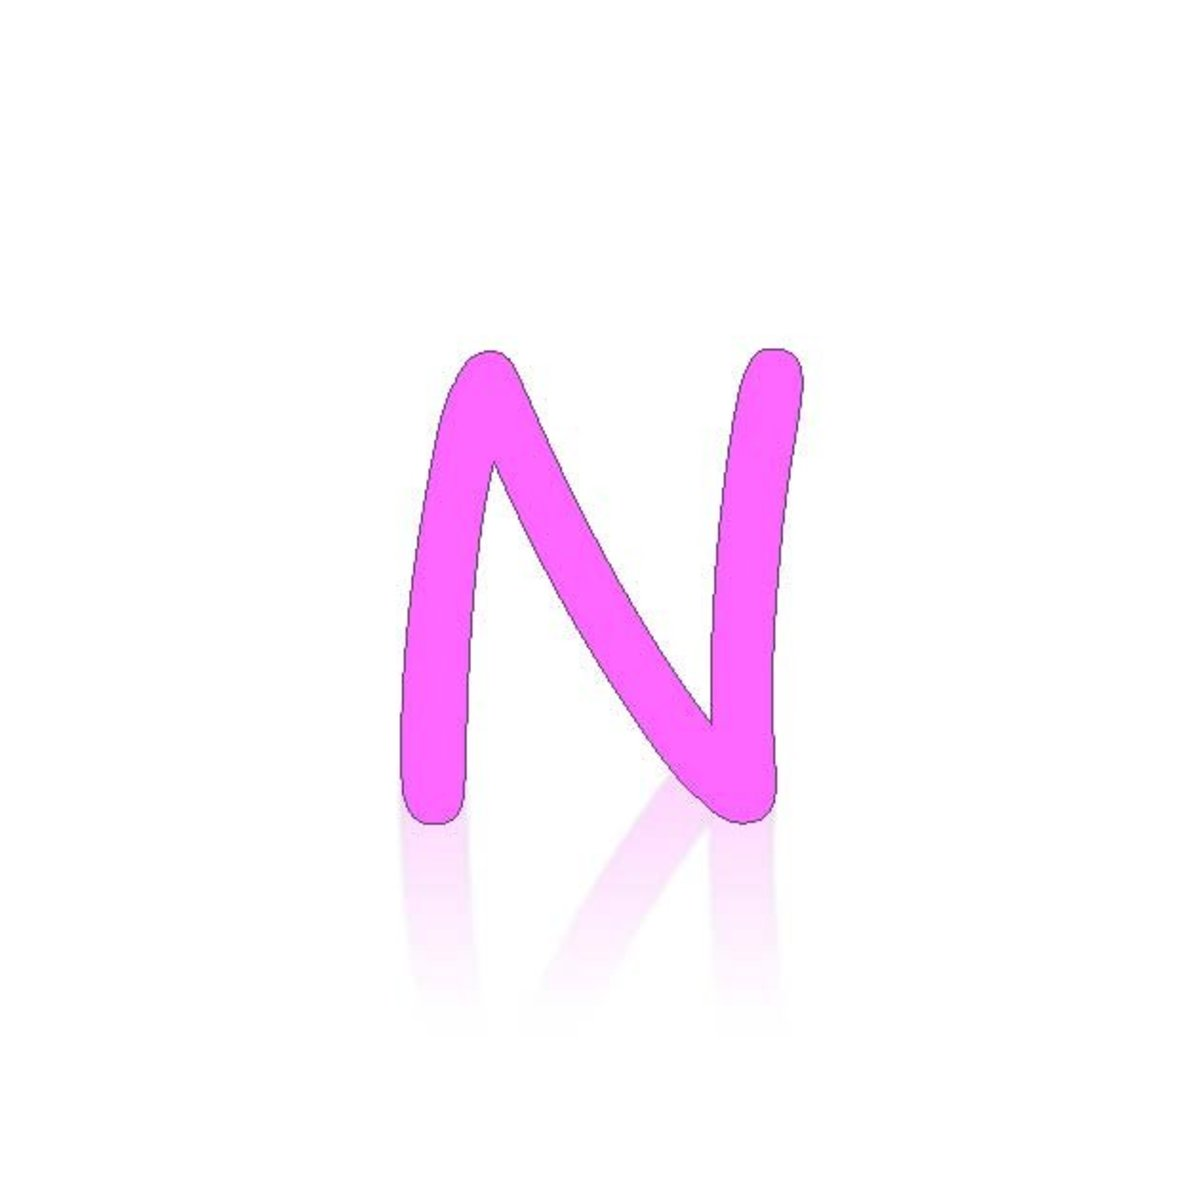 Acrostic Name Poems for Girls Names Starting with N | HubPages